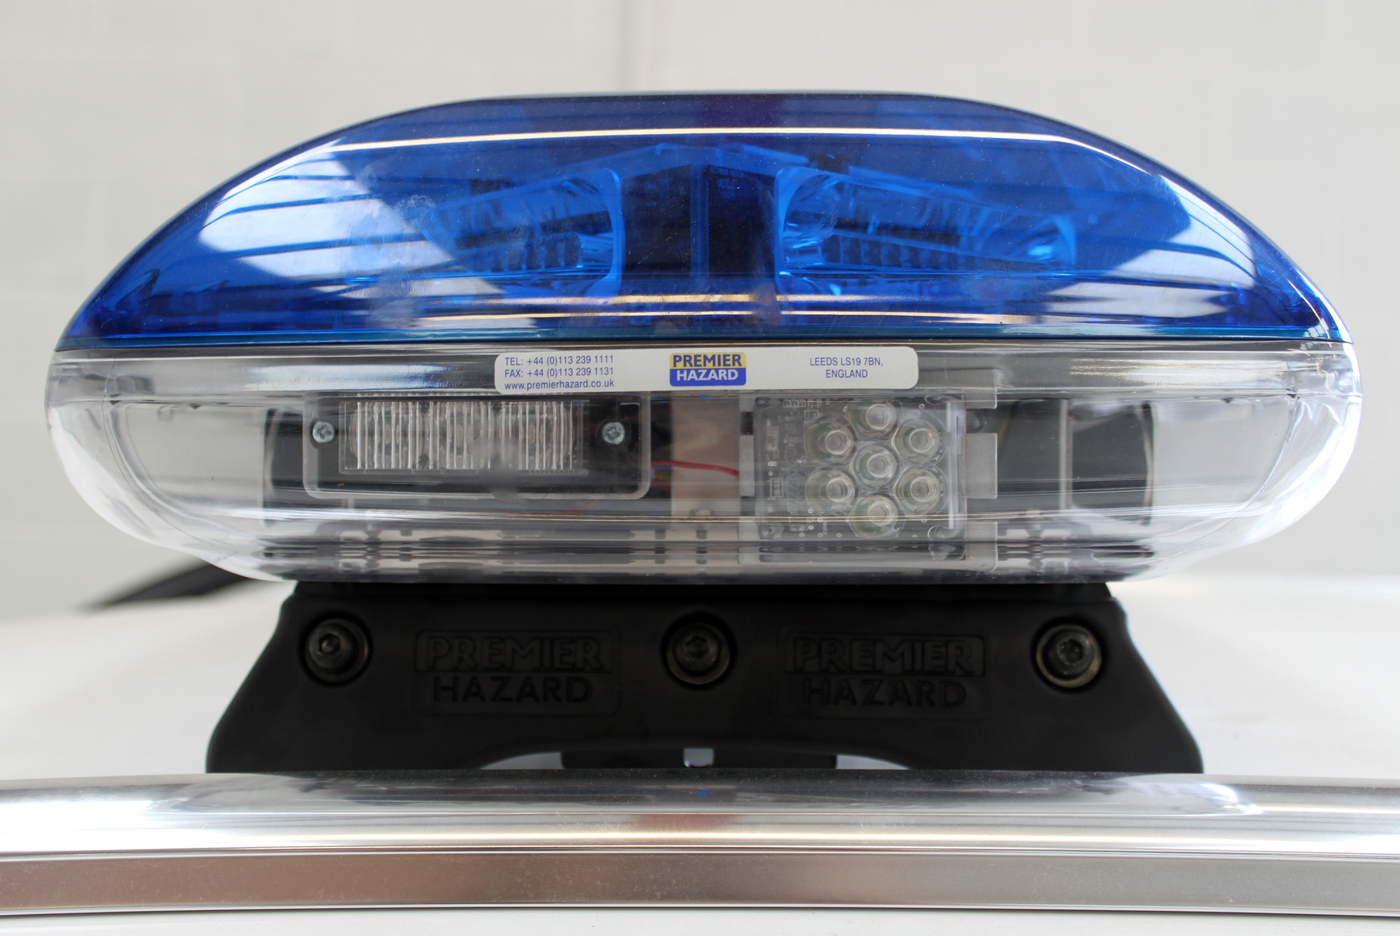 Ultimax Lightbar Premier Hazard Manufacture And Supply Emergency Vehicle Li